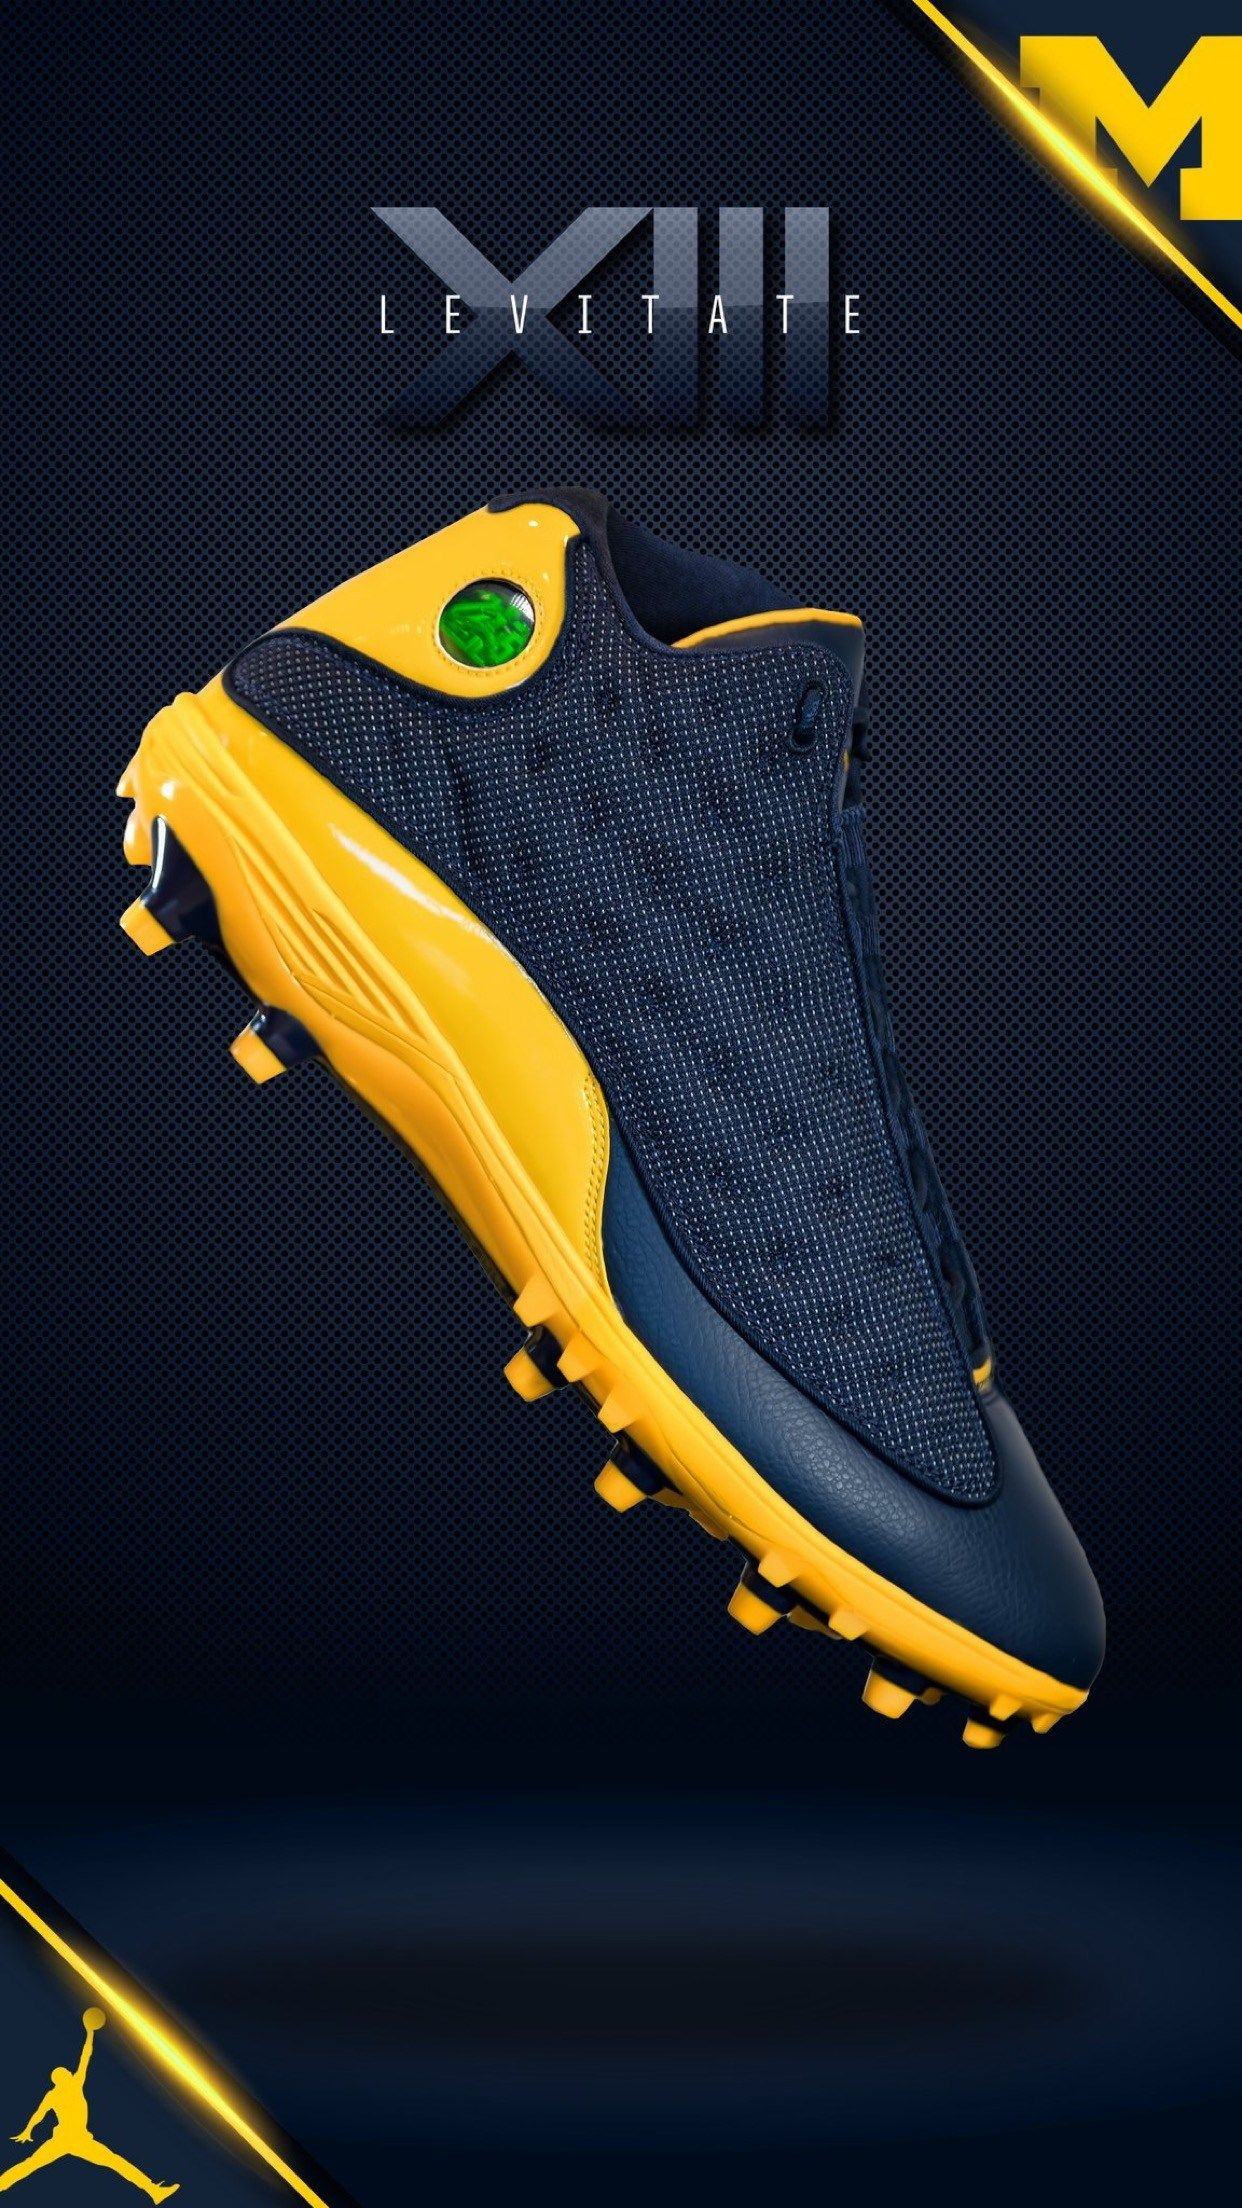 Michigan X Nike Air Jordan Xiii Cleat Jordan Football Cleats Jordan Cleats Air Jordans